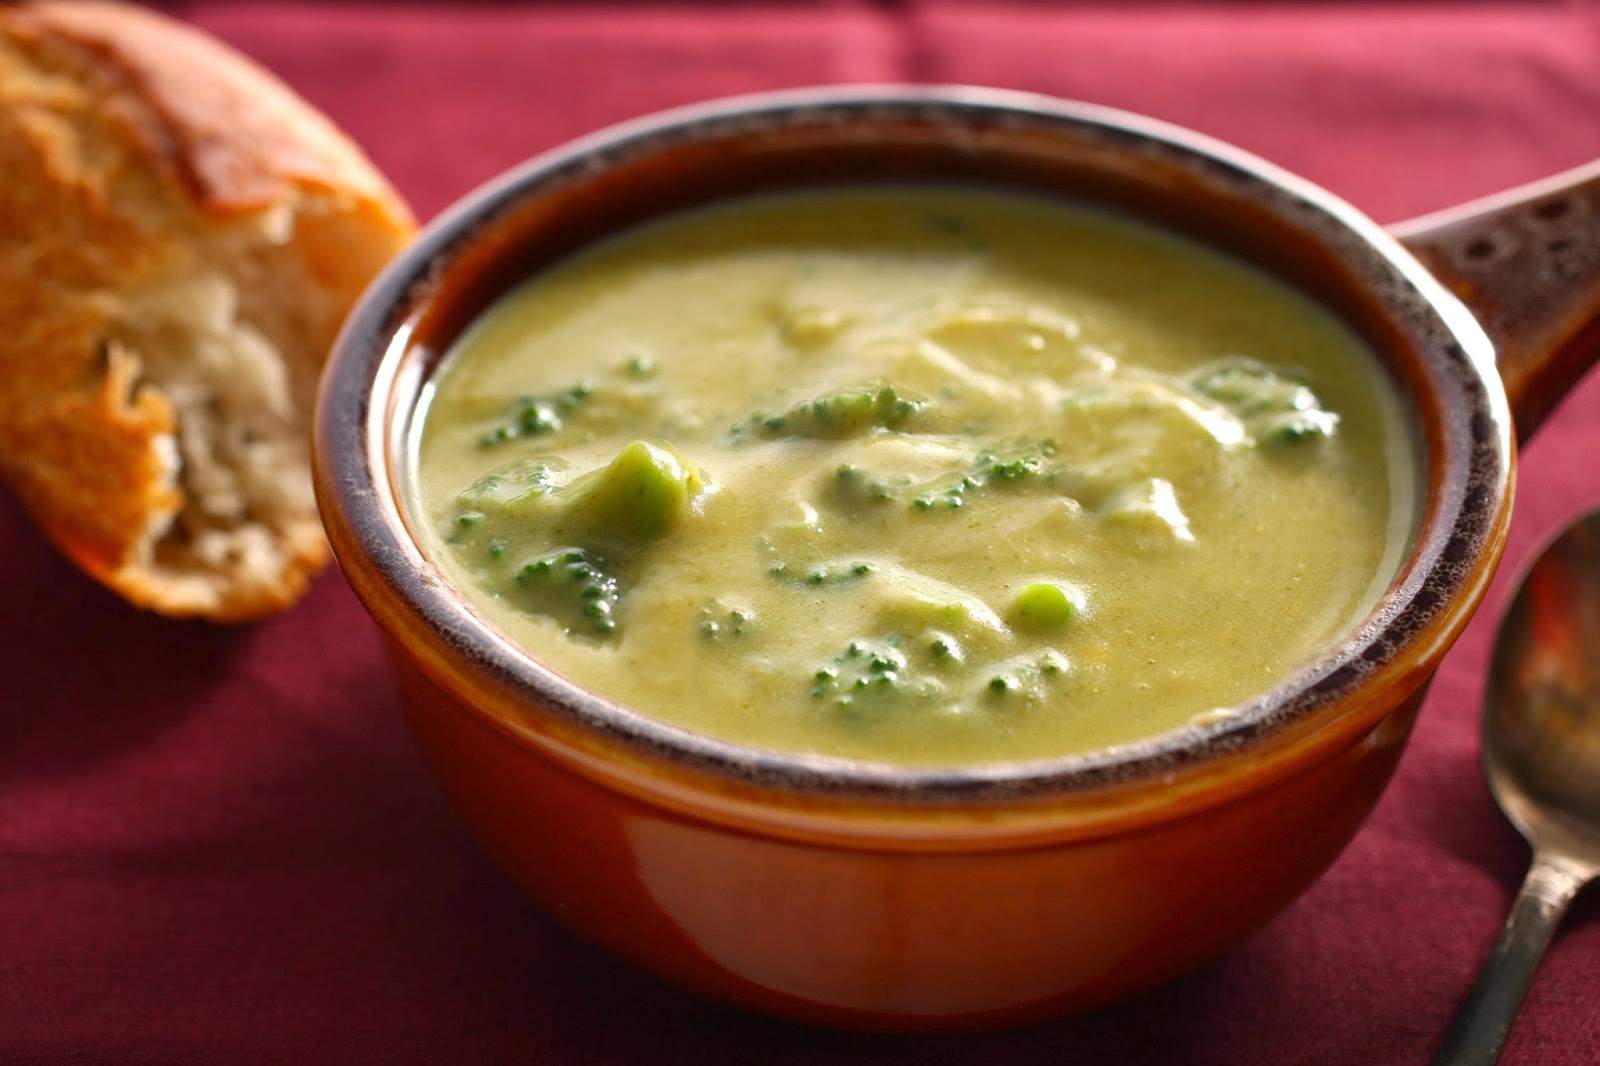 Broccoli & Cheddar Soup